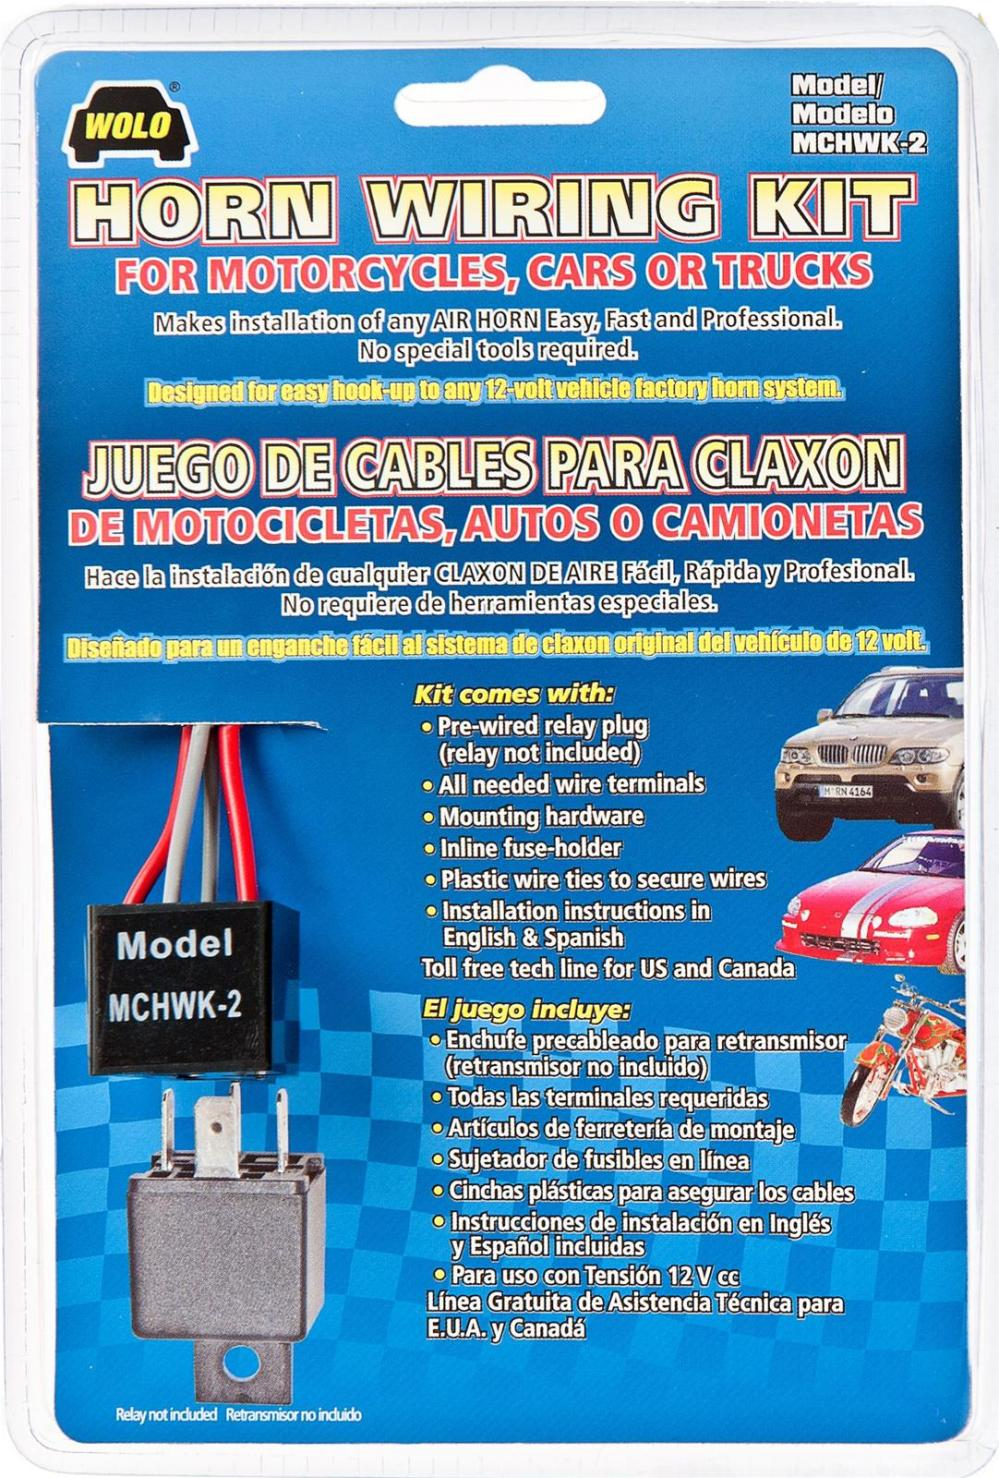 medium resolution of wolo horn wiring harnesses mchwk 2 free shipping on orders over 99 at summit racing